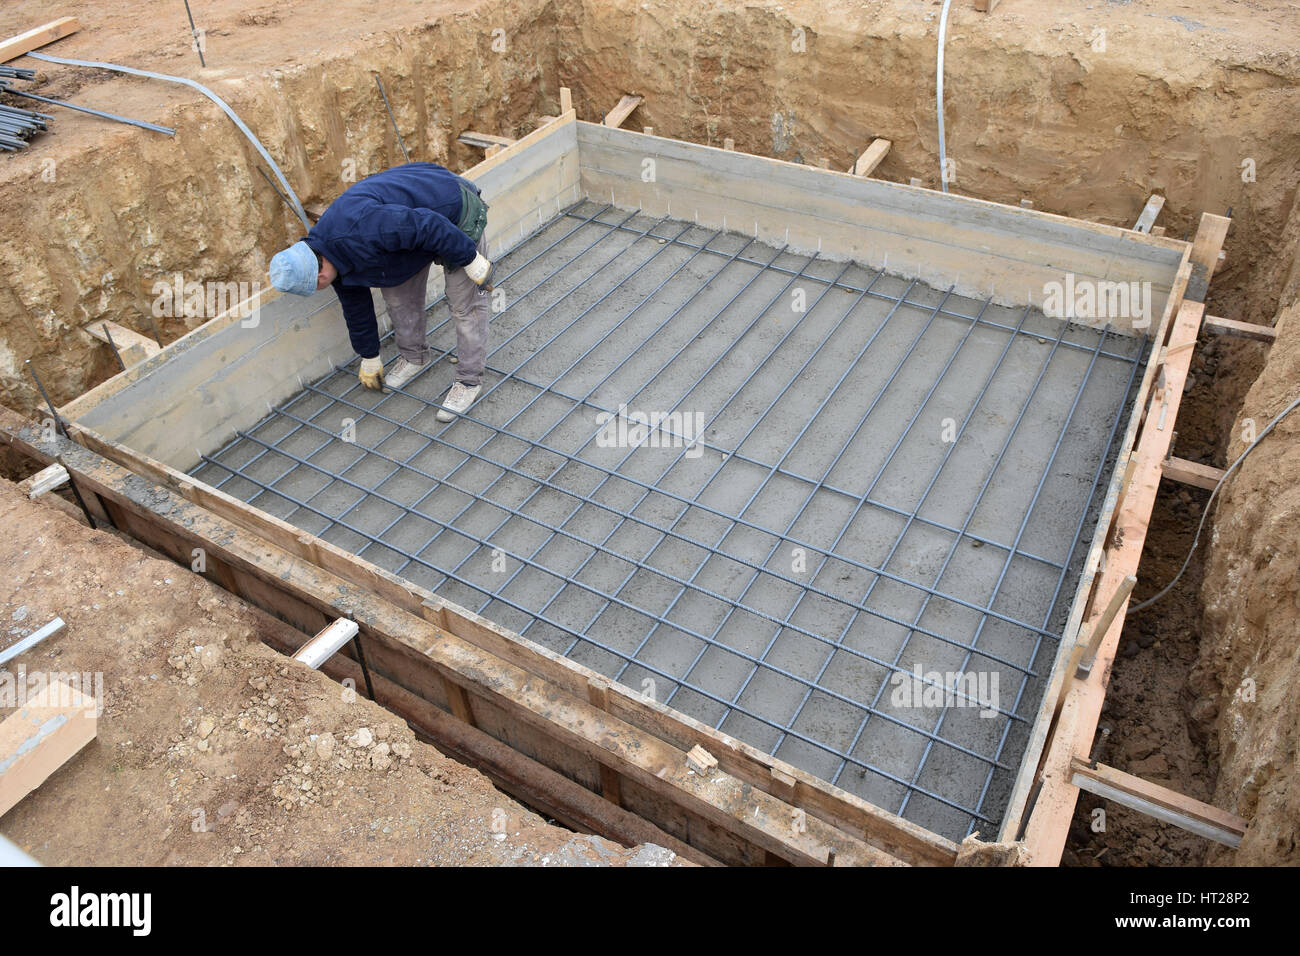 A big hole of pole in construction site building prepare for pouring cement.Worker controlled steel Stock Photo